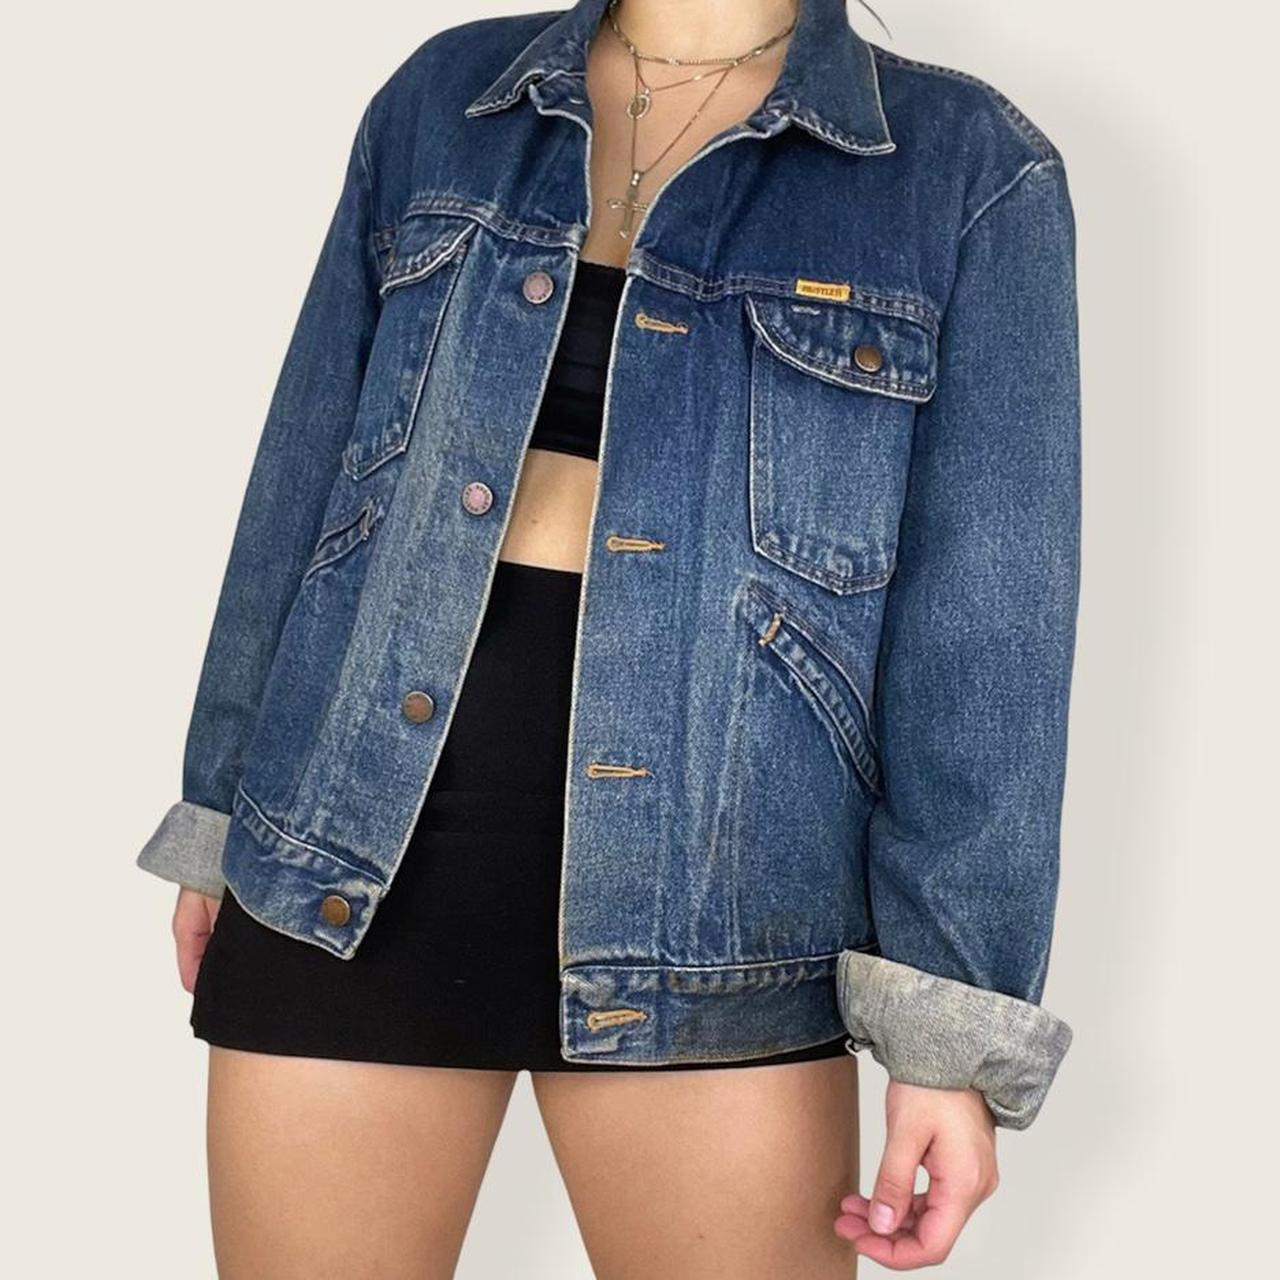 Product Image 1 - Vintage denim jacket 💫  Classic fitted